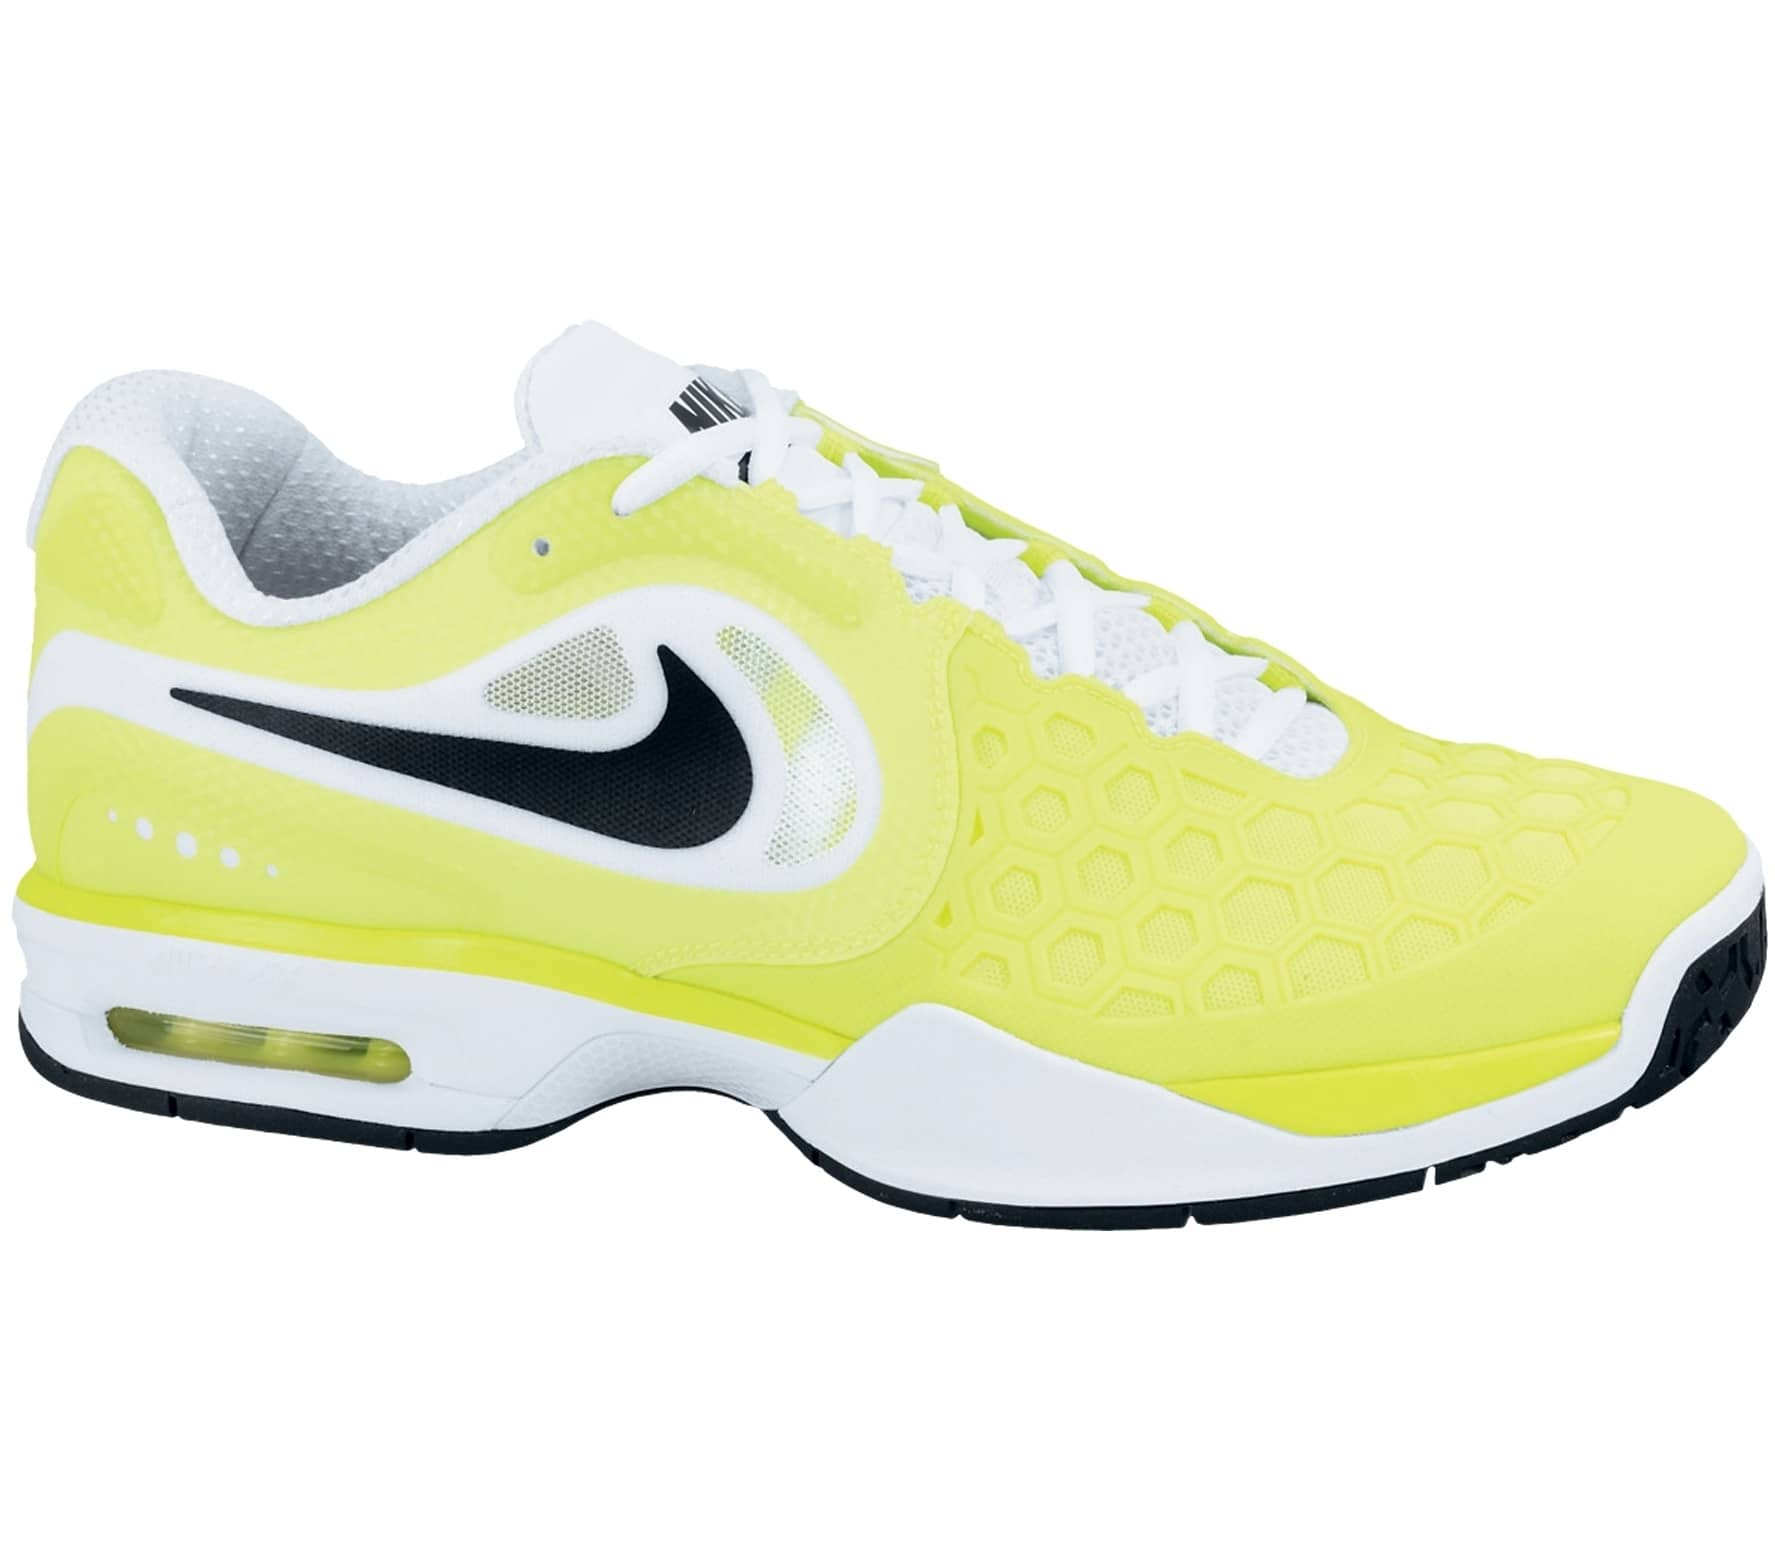 Tennis Air Courtballistec Nike Sp13 Max Shoe Men 4 3 dsQrhtCx